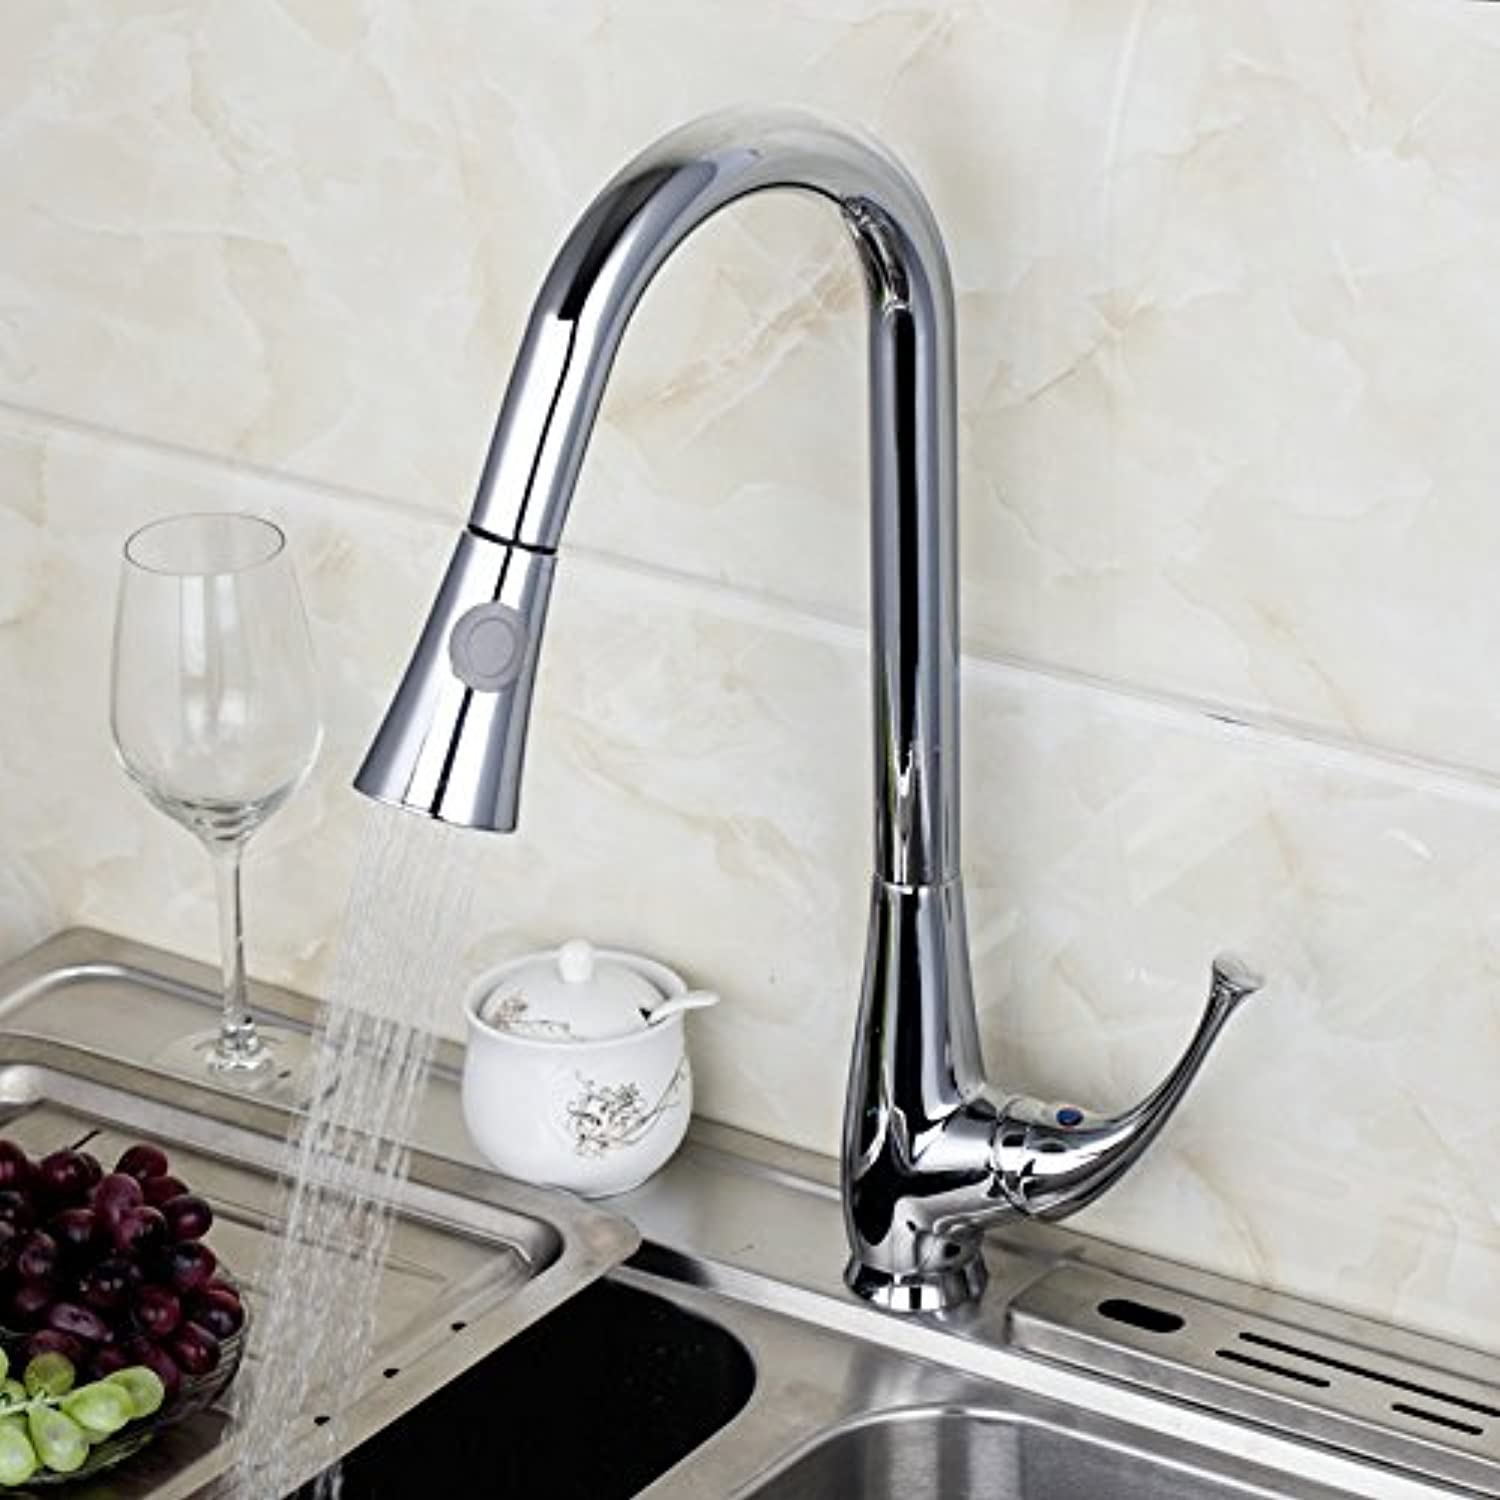 U-Enjoy Pull Out and Top Quality Down Polished Chrome Finished Deck Mounted Single Handle Faucet Kitchen Tap Mixer (Free Shipping)